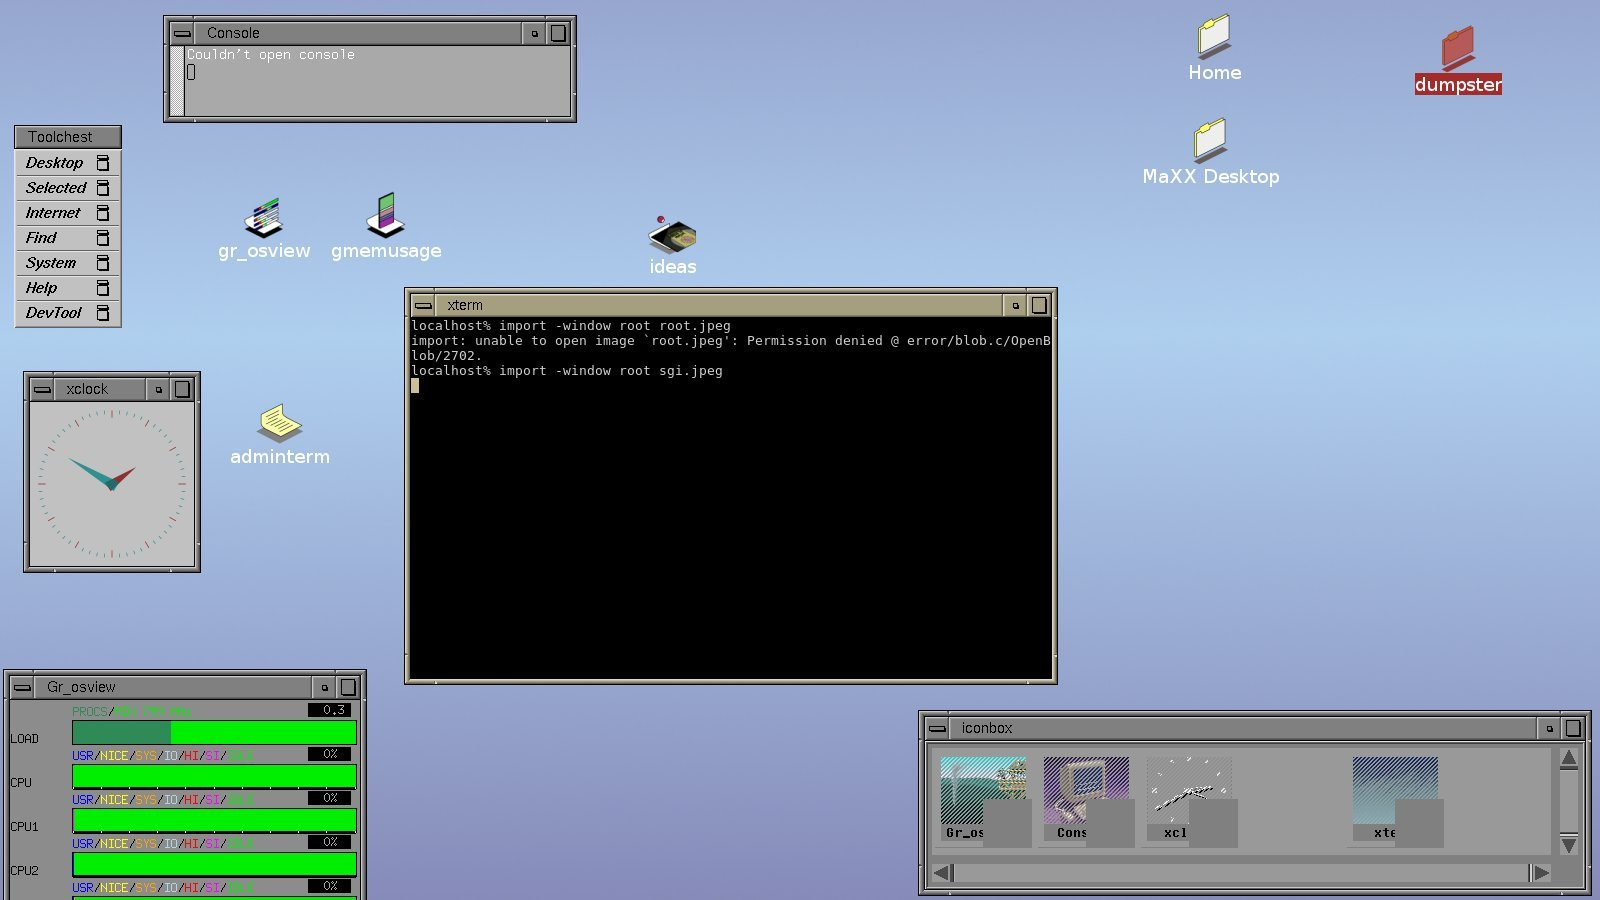 SGI UNIX desktop running on Linux.